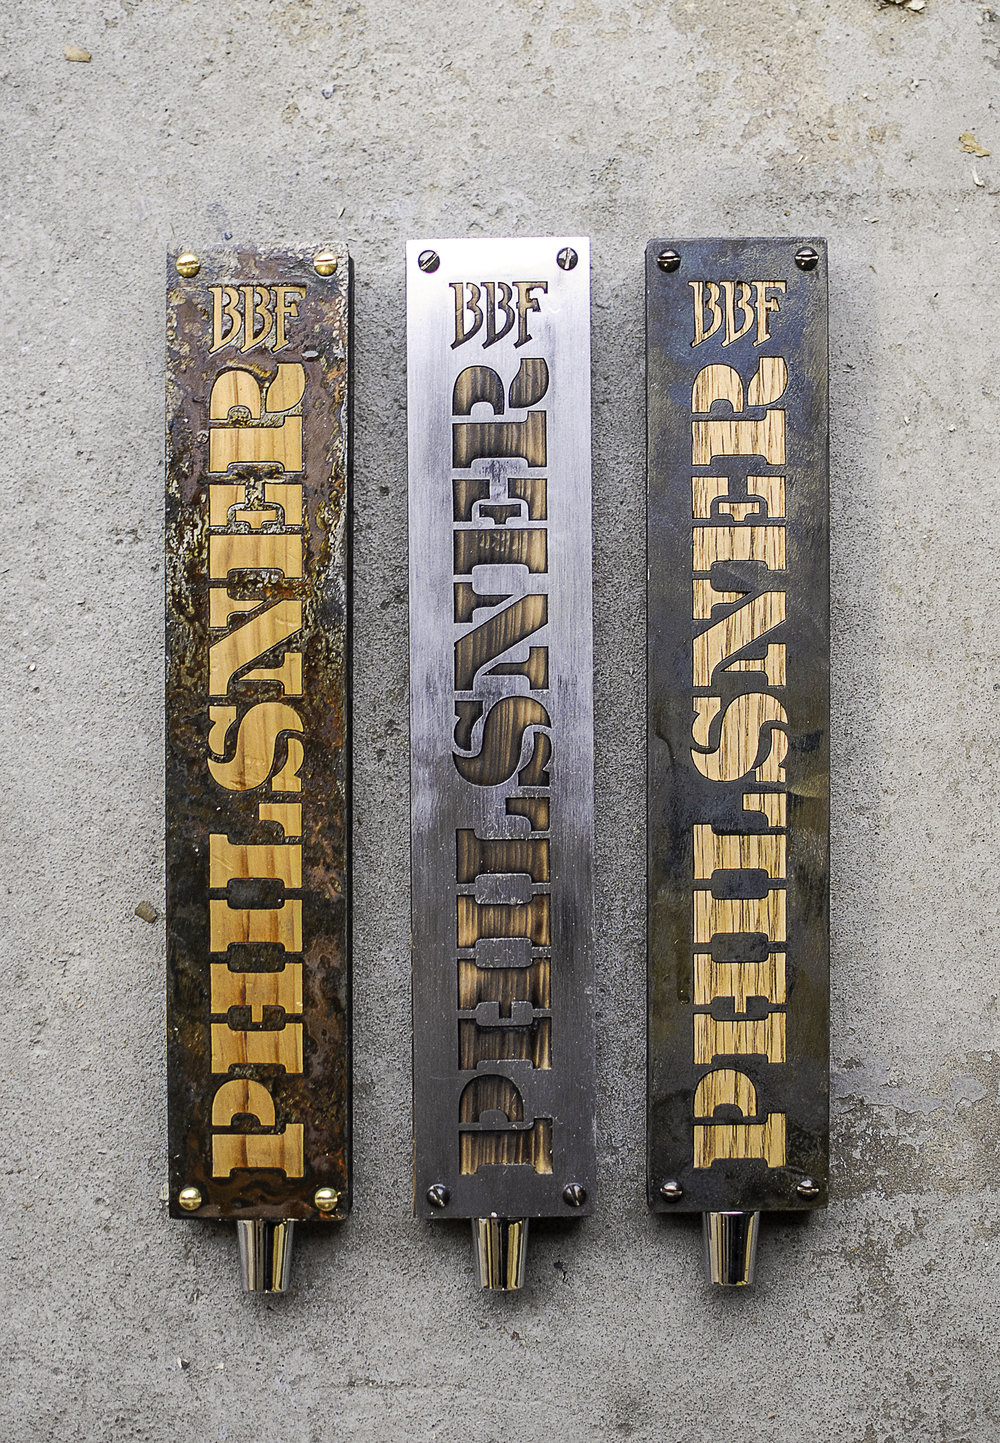 Reclaimed wood and steel tap handles for Maryland-based brewery, Brookville Beer Farm. Uses a variety of hardwoods and chemicals to alter the appearance of the steel.